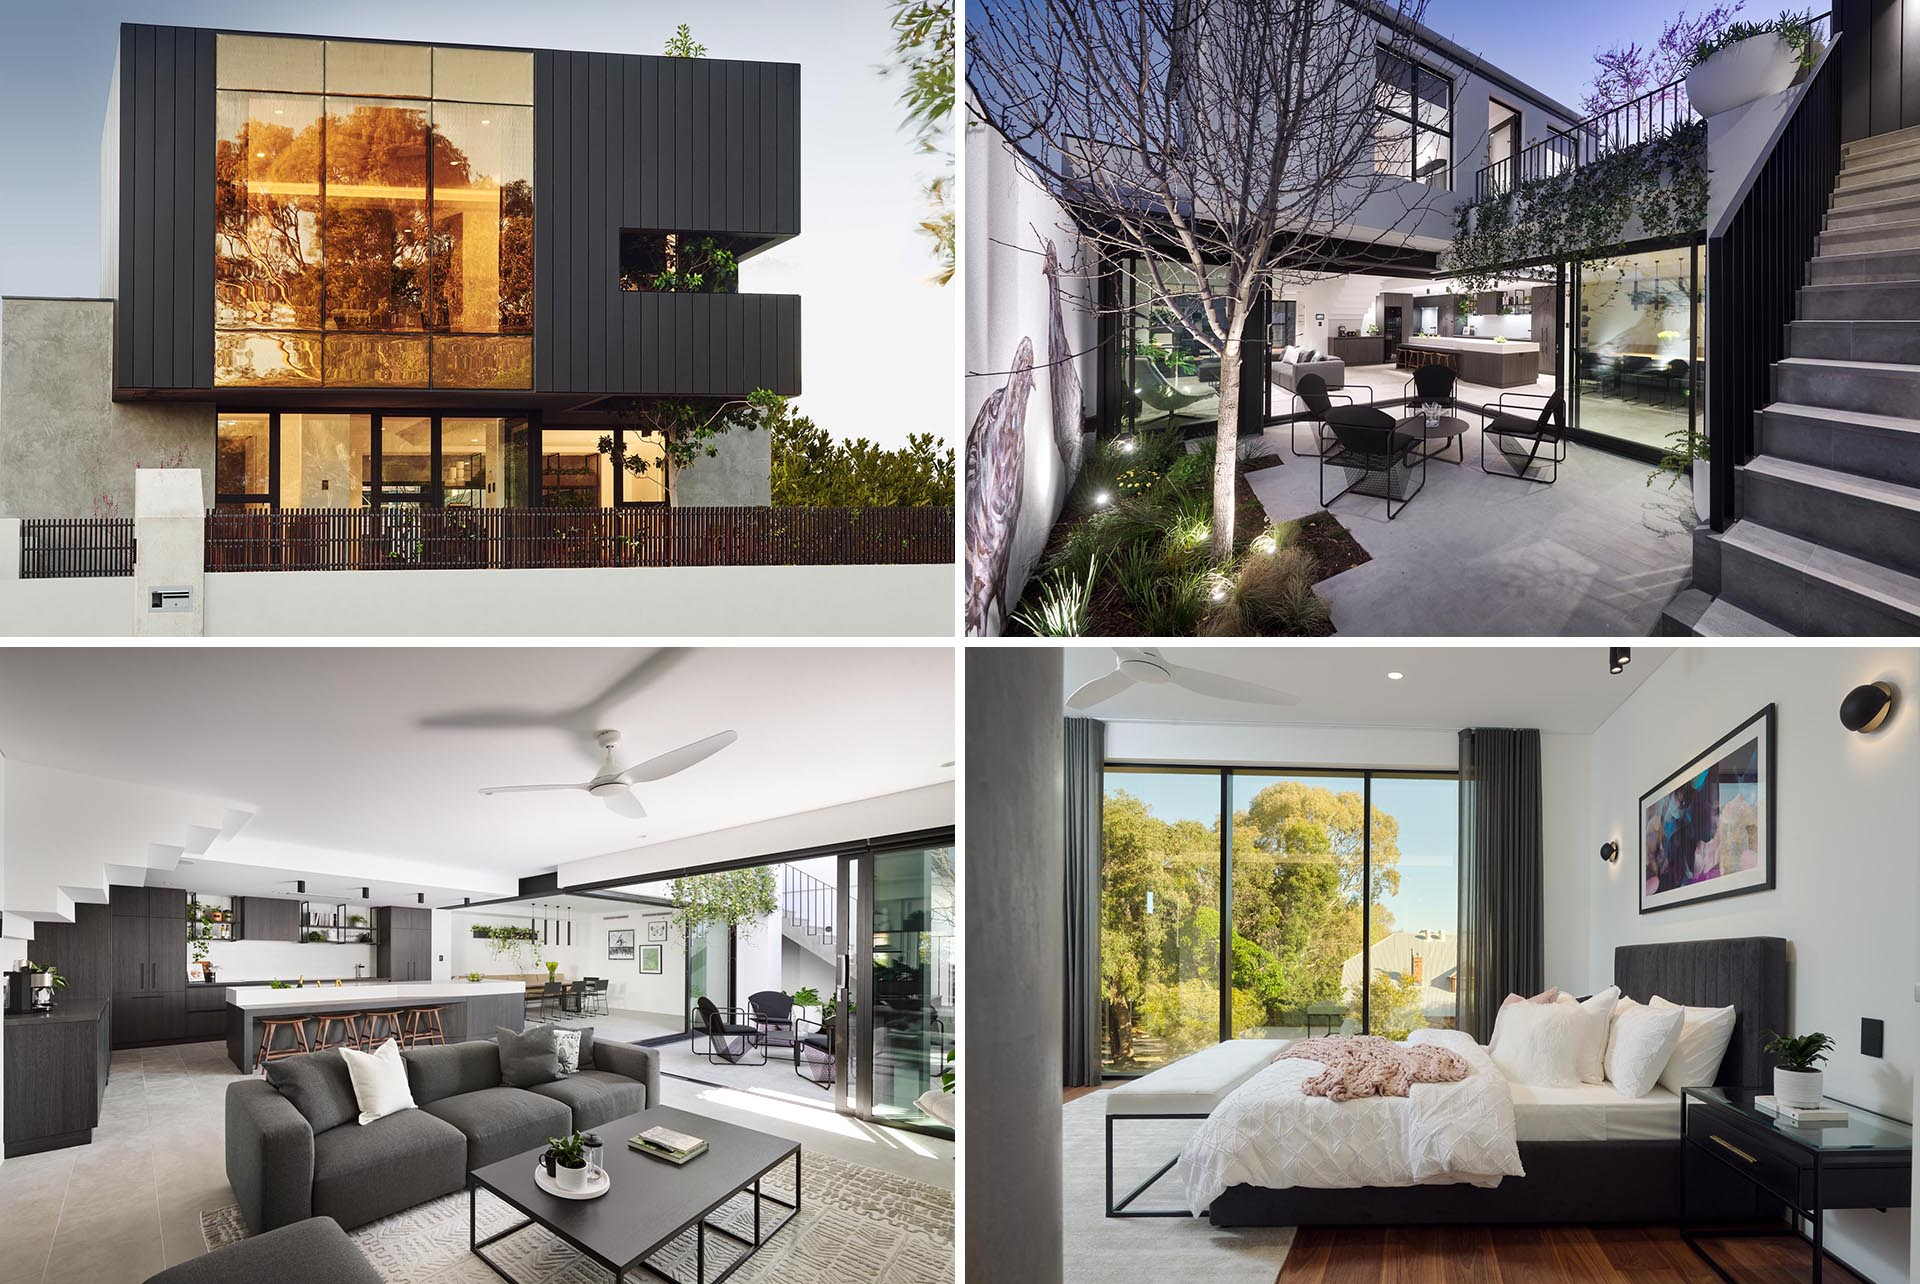 A modern house with an open floor plan and a grey color palette.